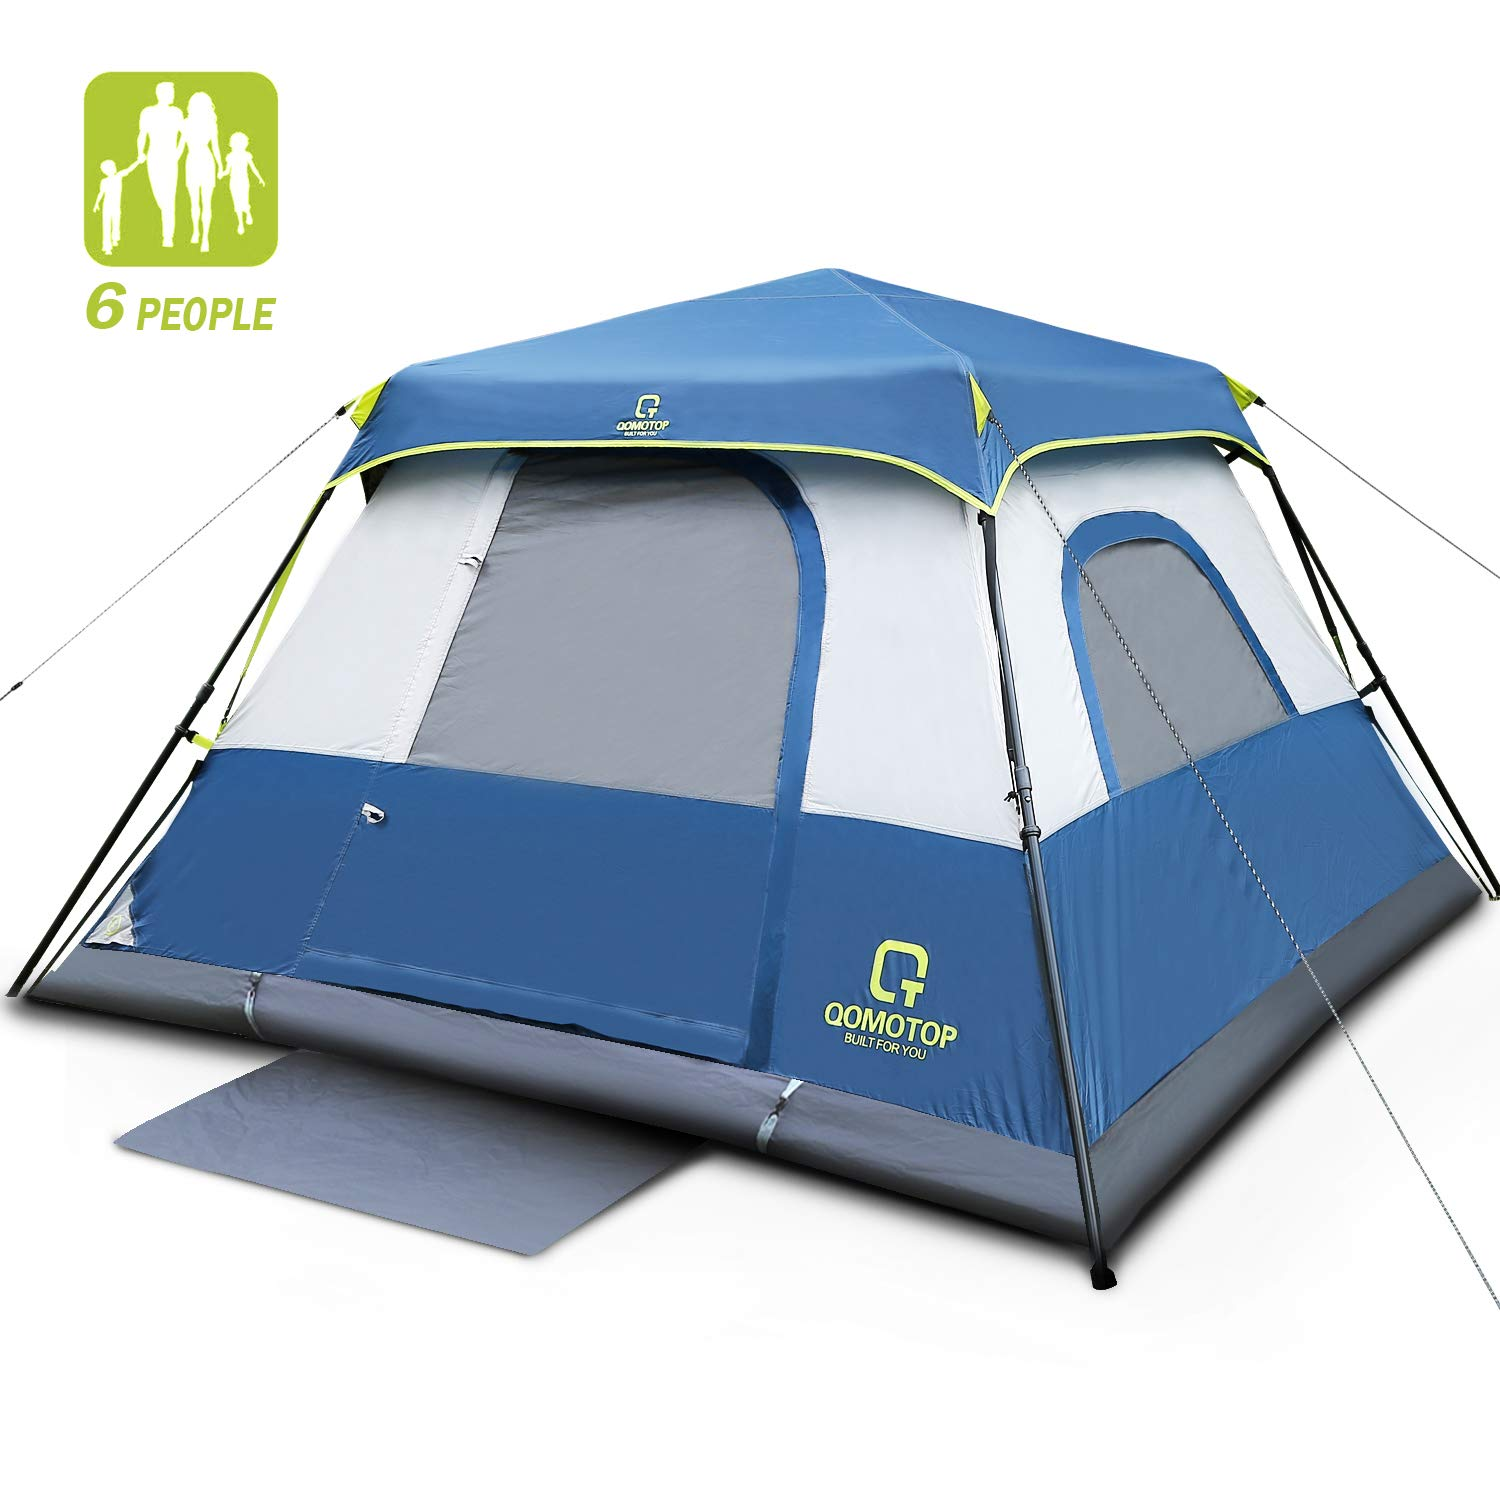 OT QOMOTOP Cabin Tent 6 People,10×9 Feet 66in Tall Camping Tent, 1 Minute Set Up, Top Rainfly, Rainproof, Smooth Ventilation, Sturdy Frame, Seamless Gap, Electrical Cord Access Port, Gate Mat-HXQTIC06